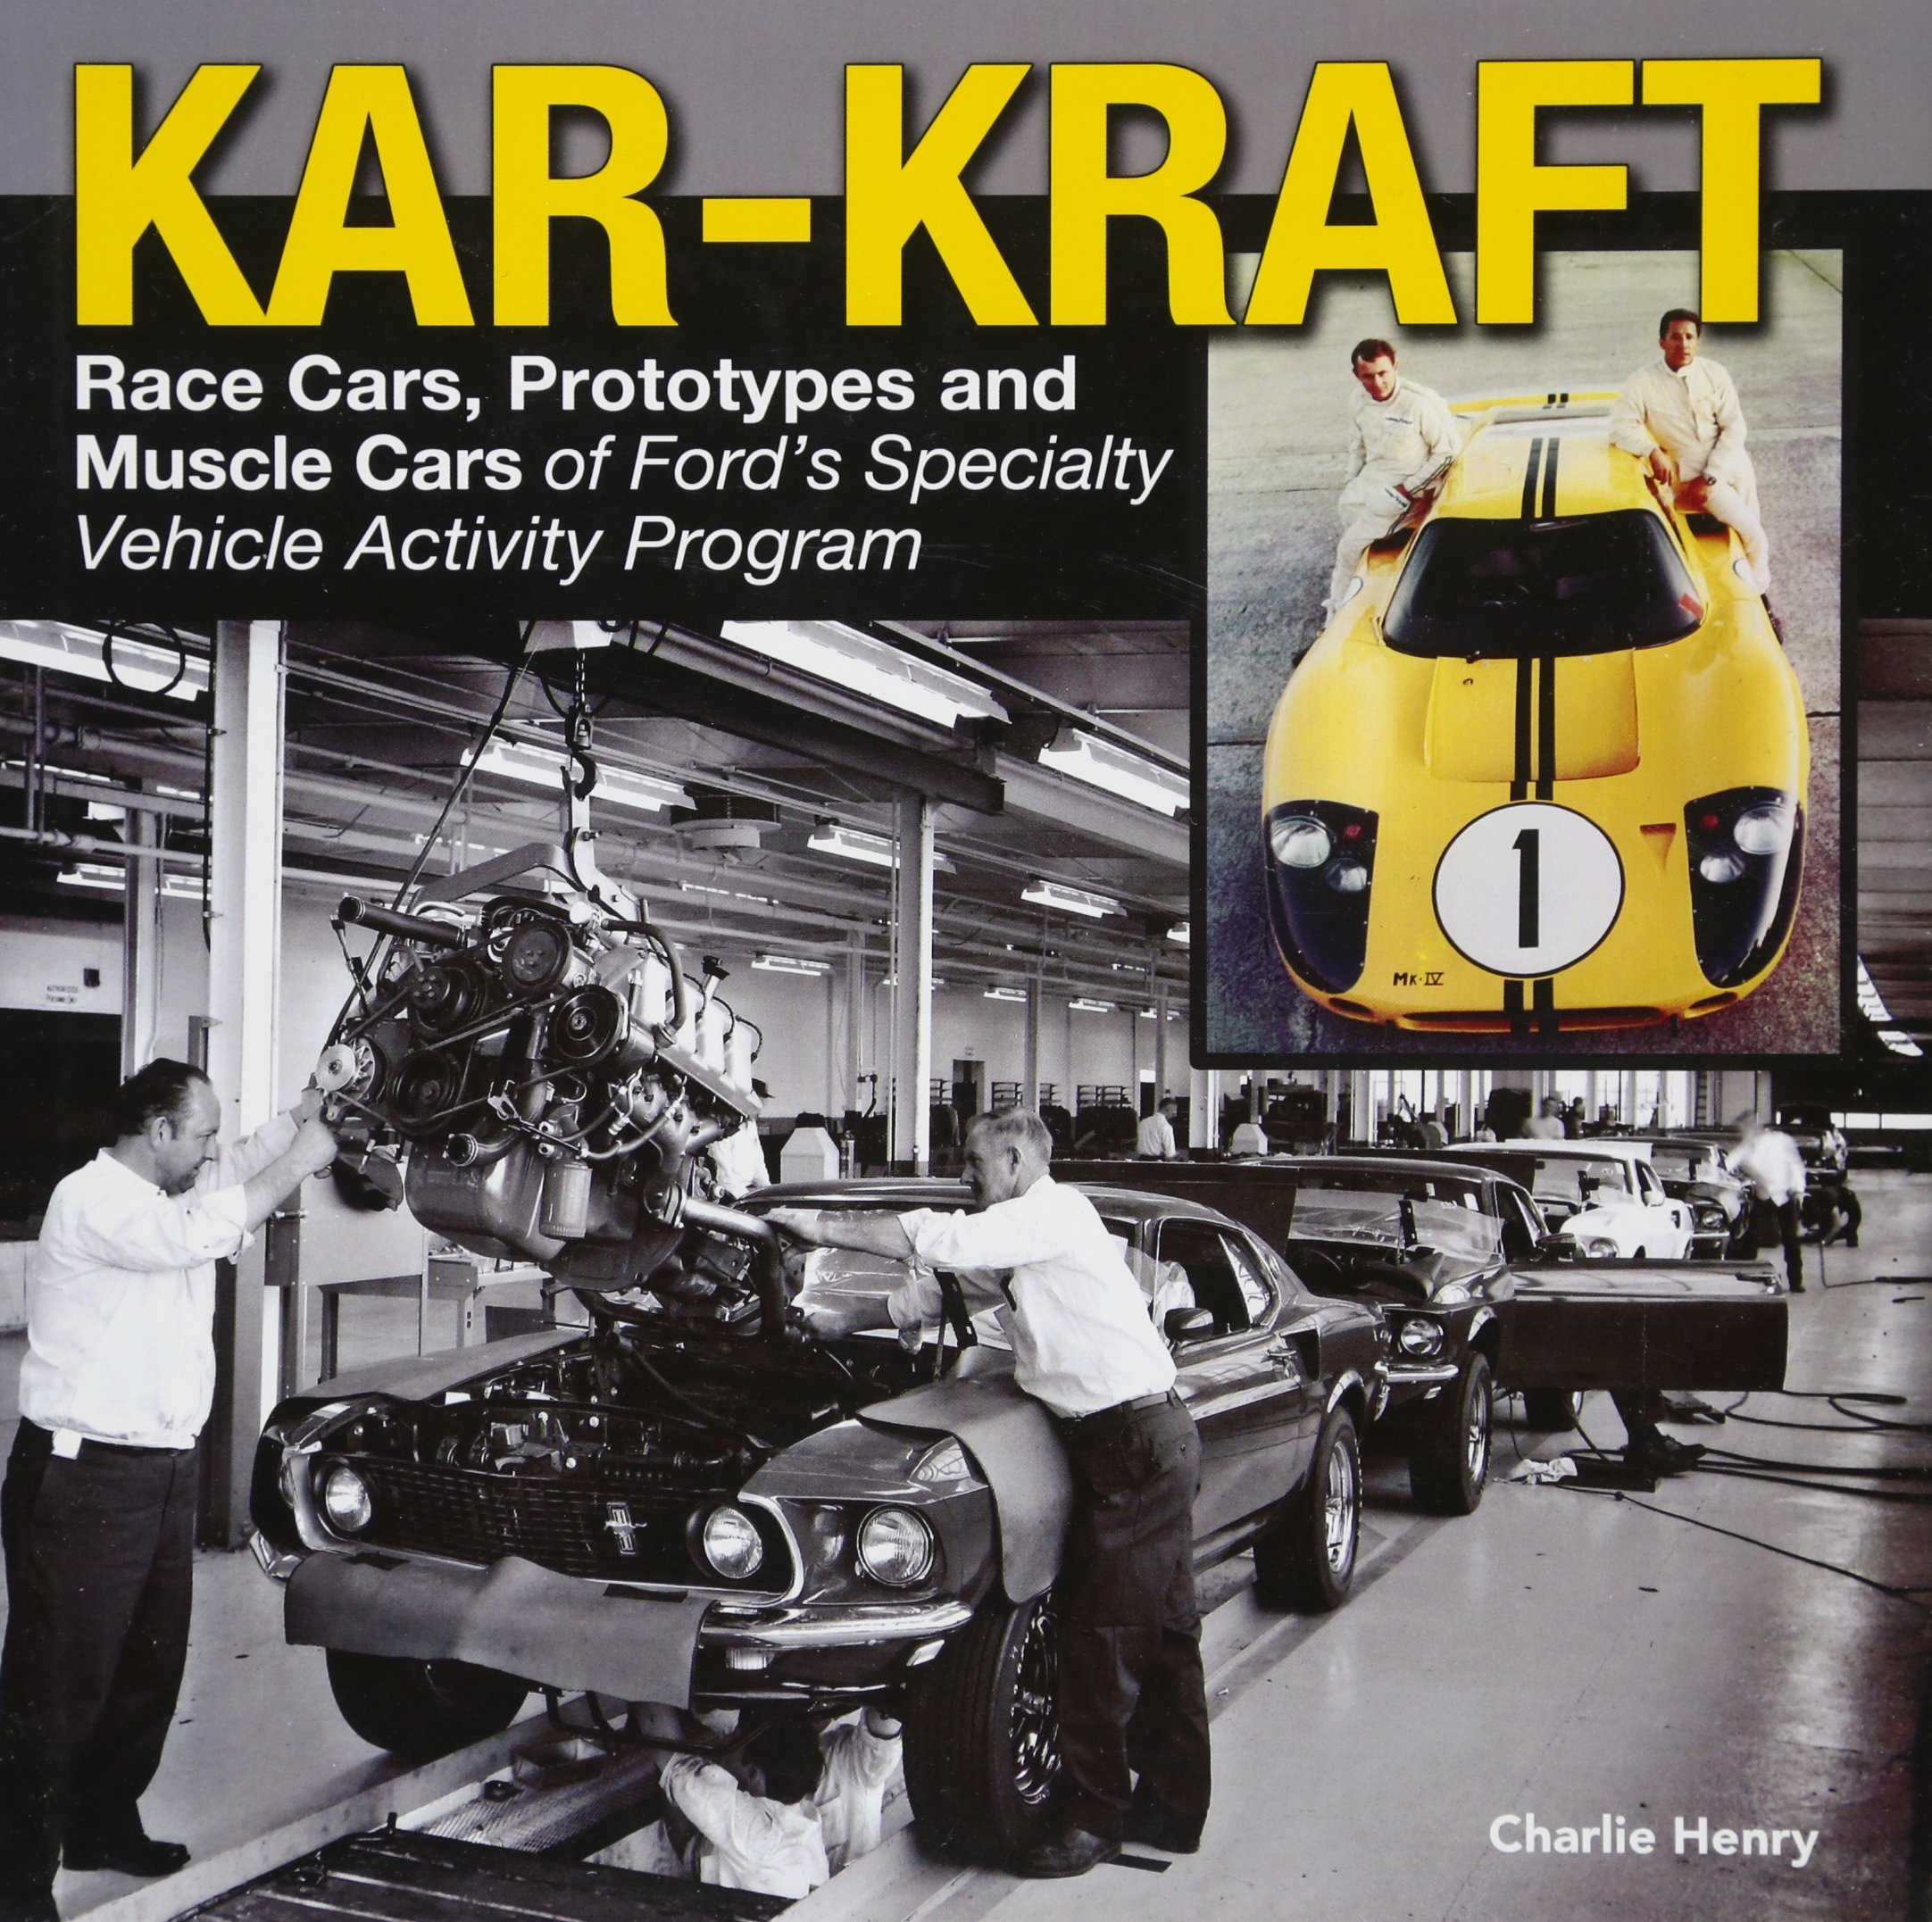 kar kraft race cars prototypes and muscle cars of ford s specialty vehicle activity program charlie henry books